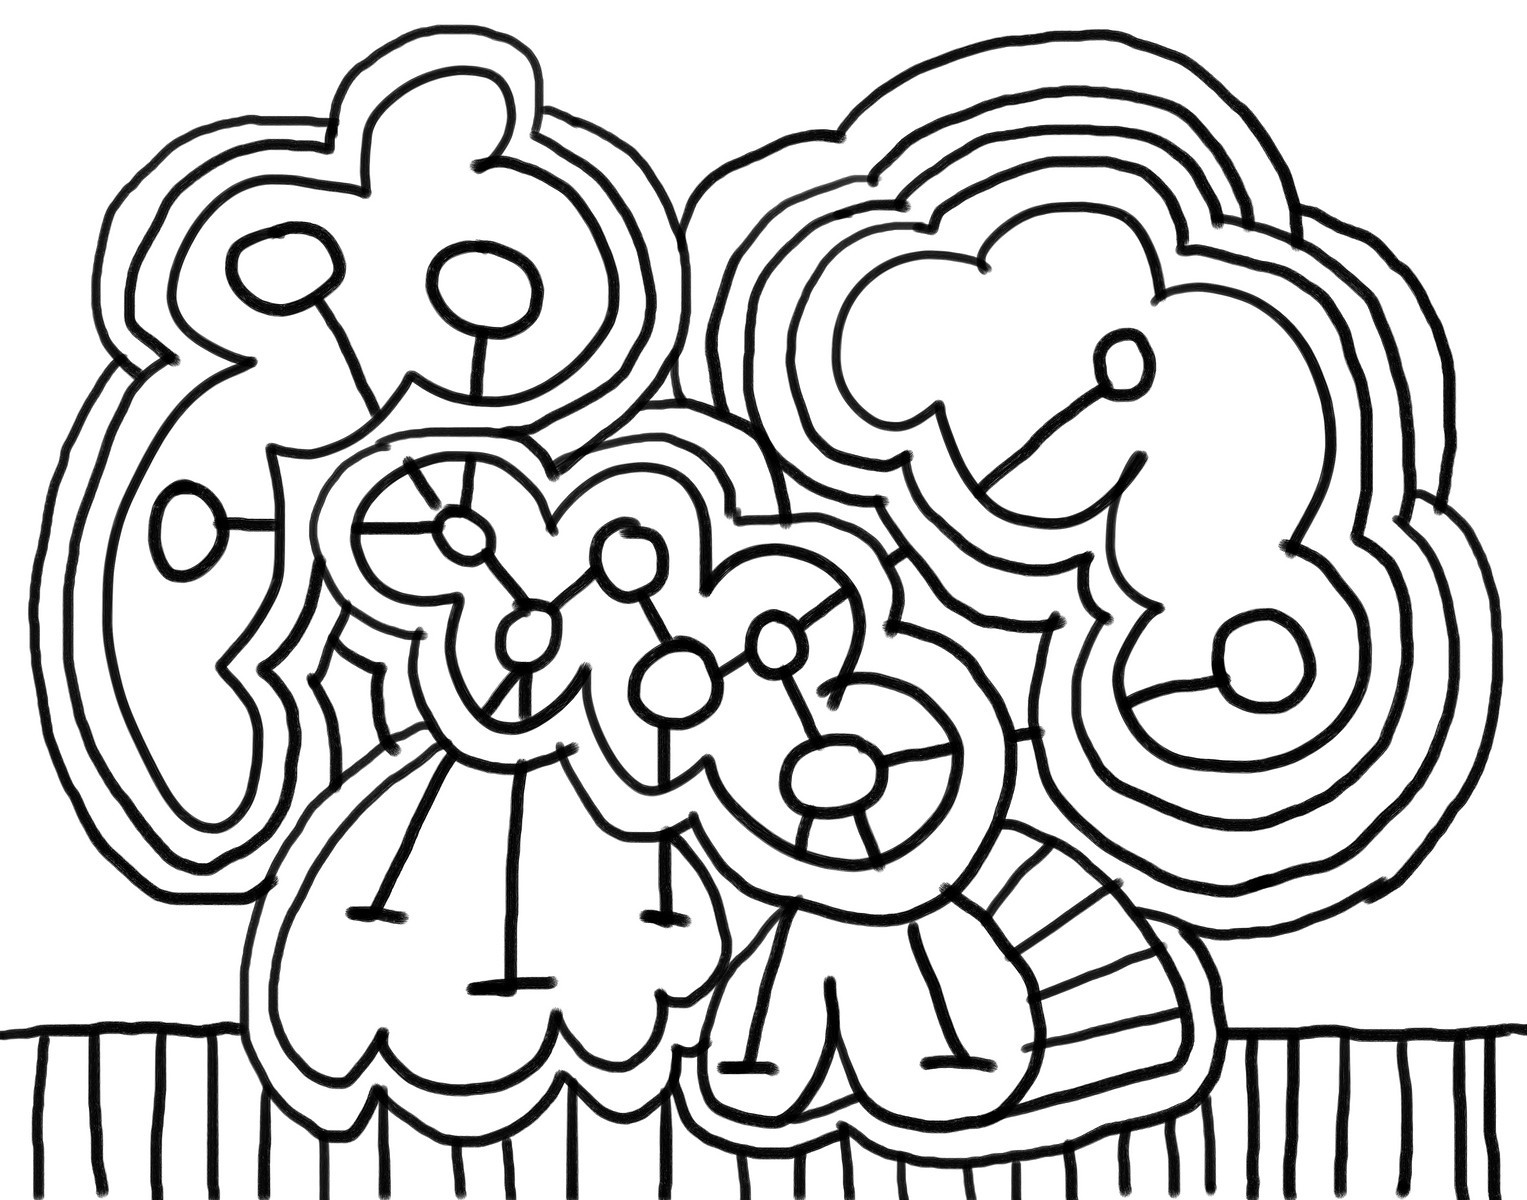 example - How To Make Coloring Pages